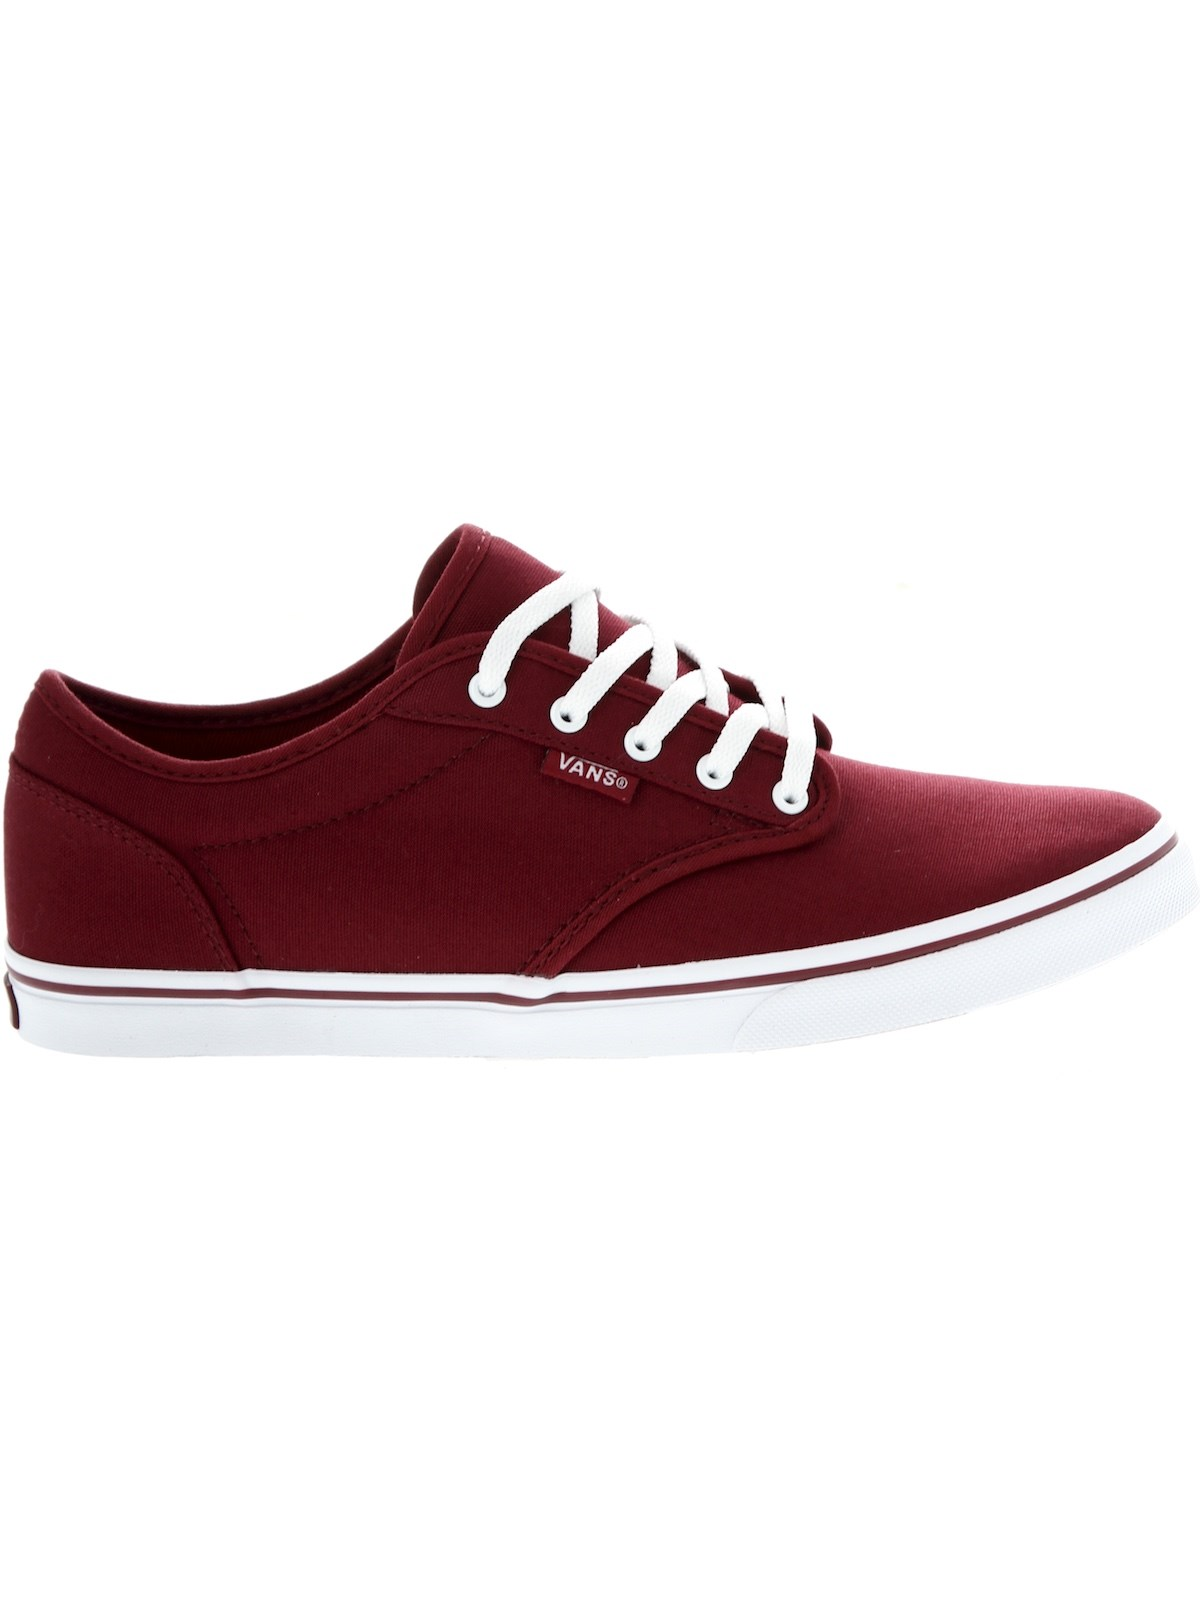 vans atwood low canvas